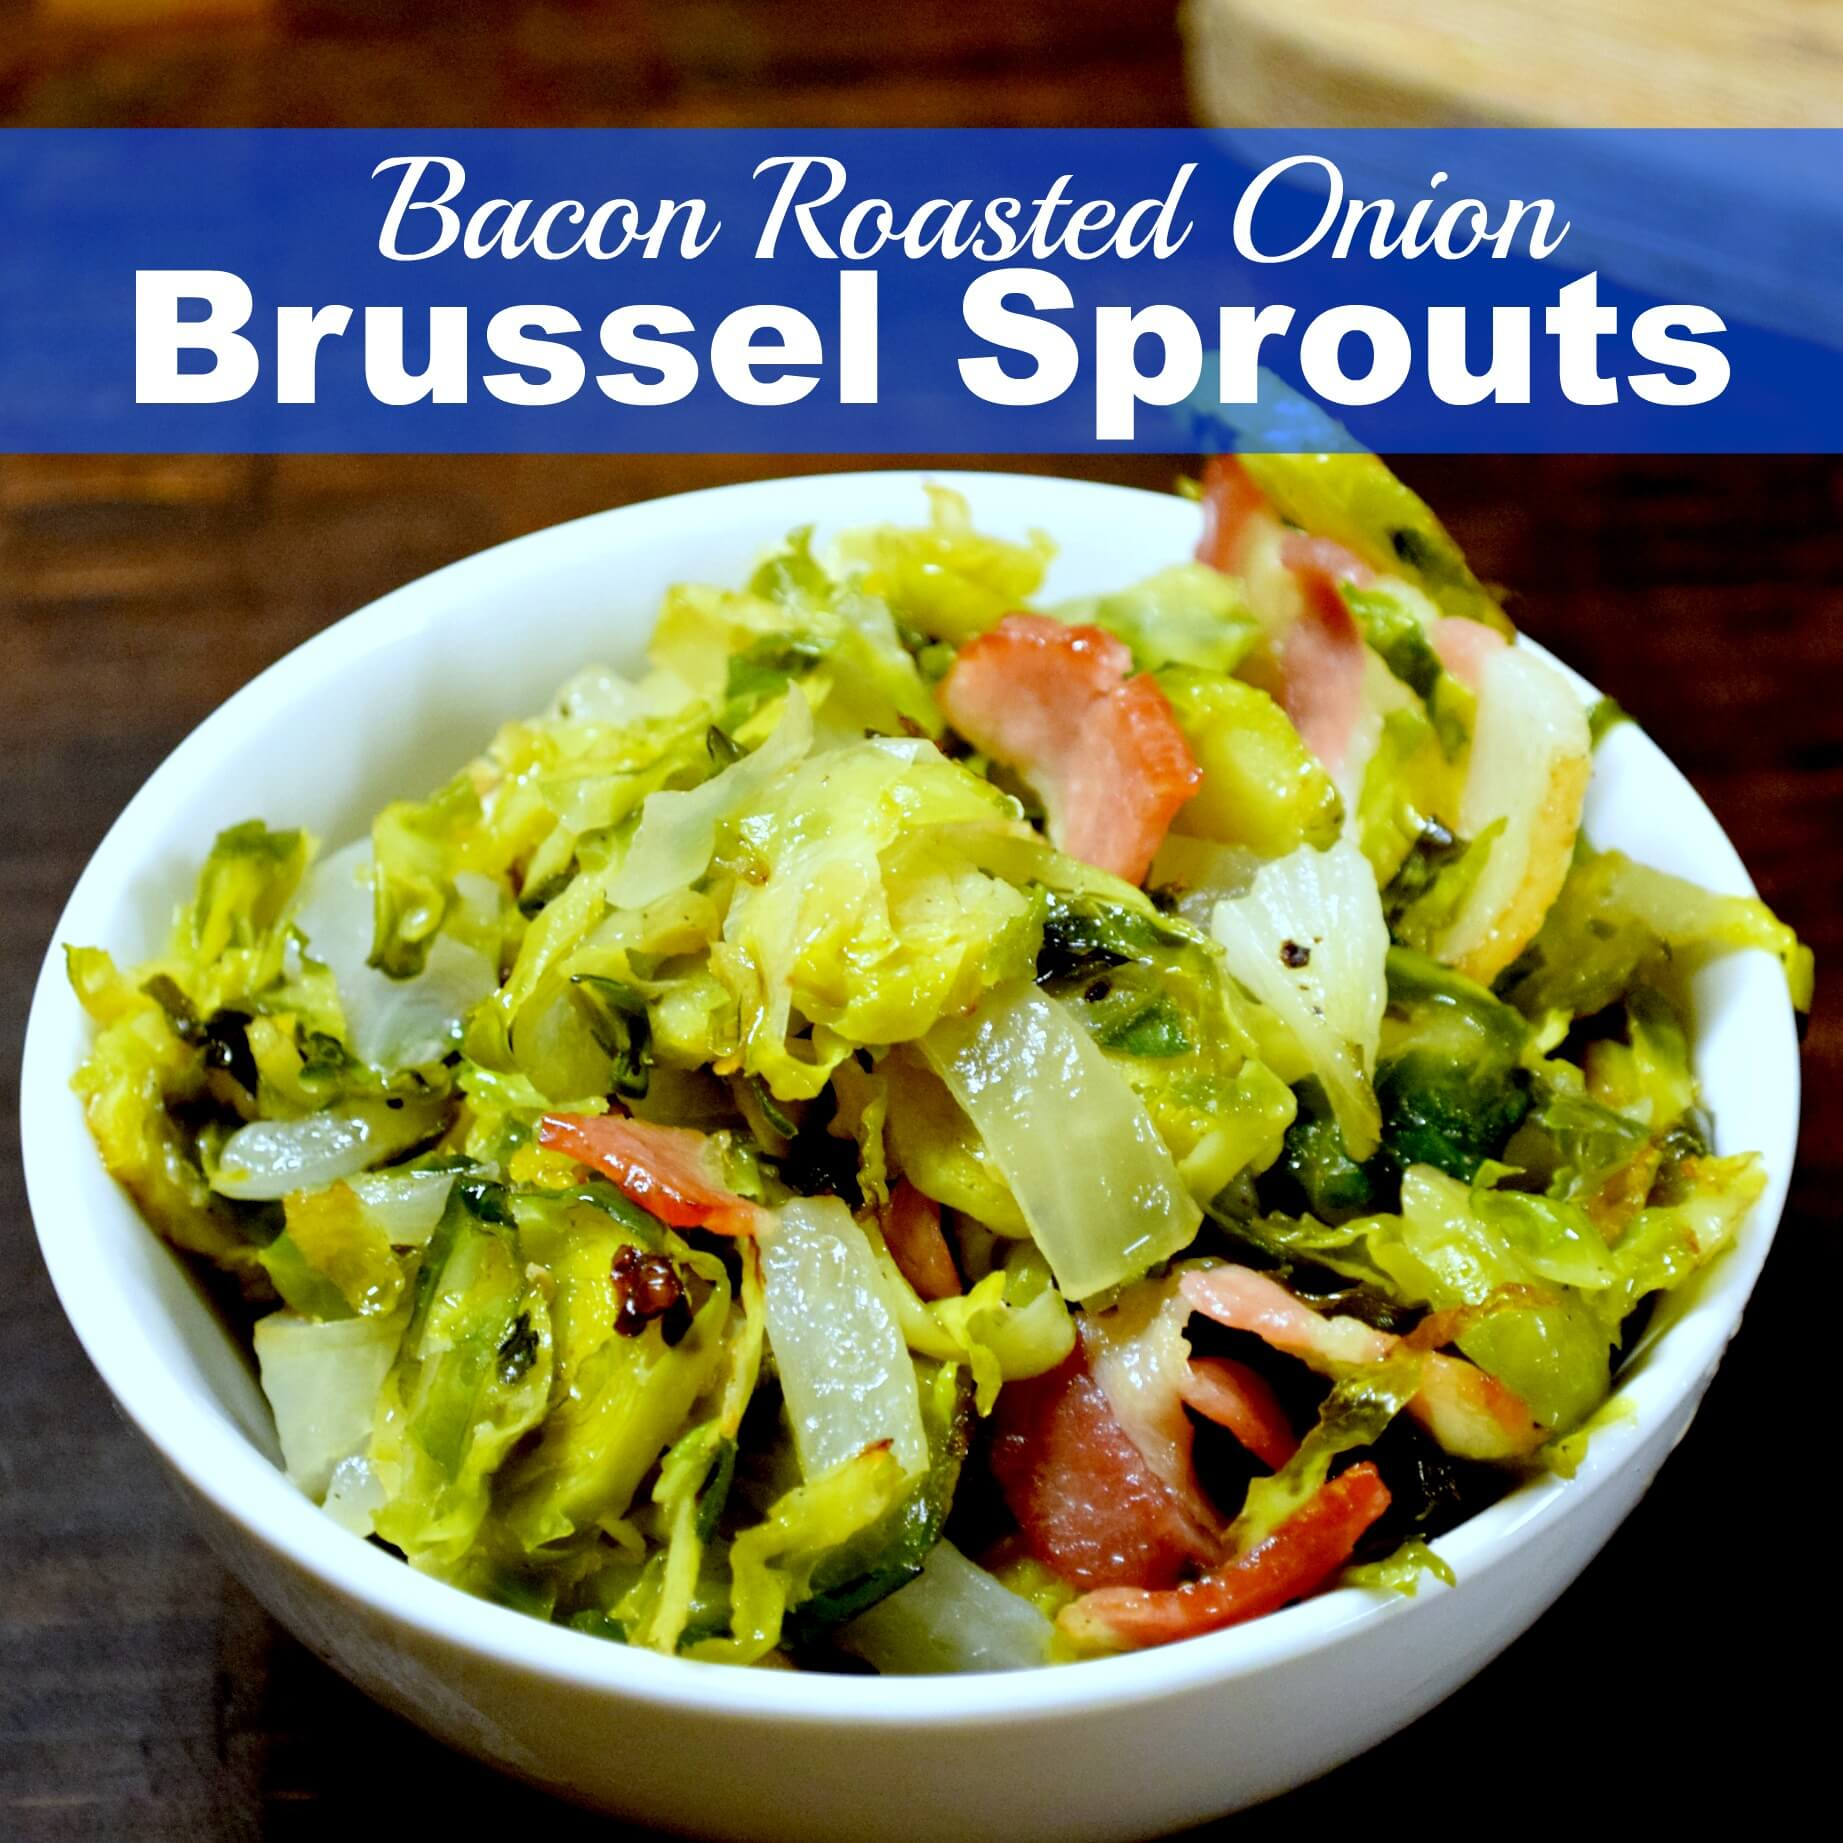 The BEST Brussel Sprouts Recipe Ever!